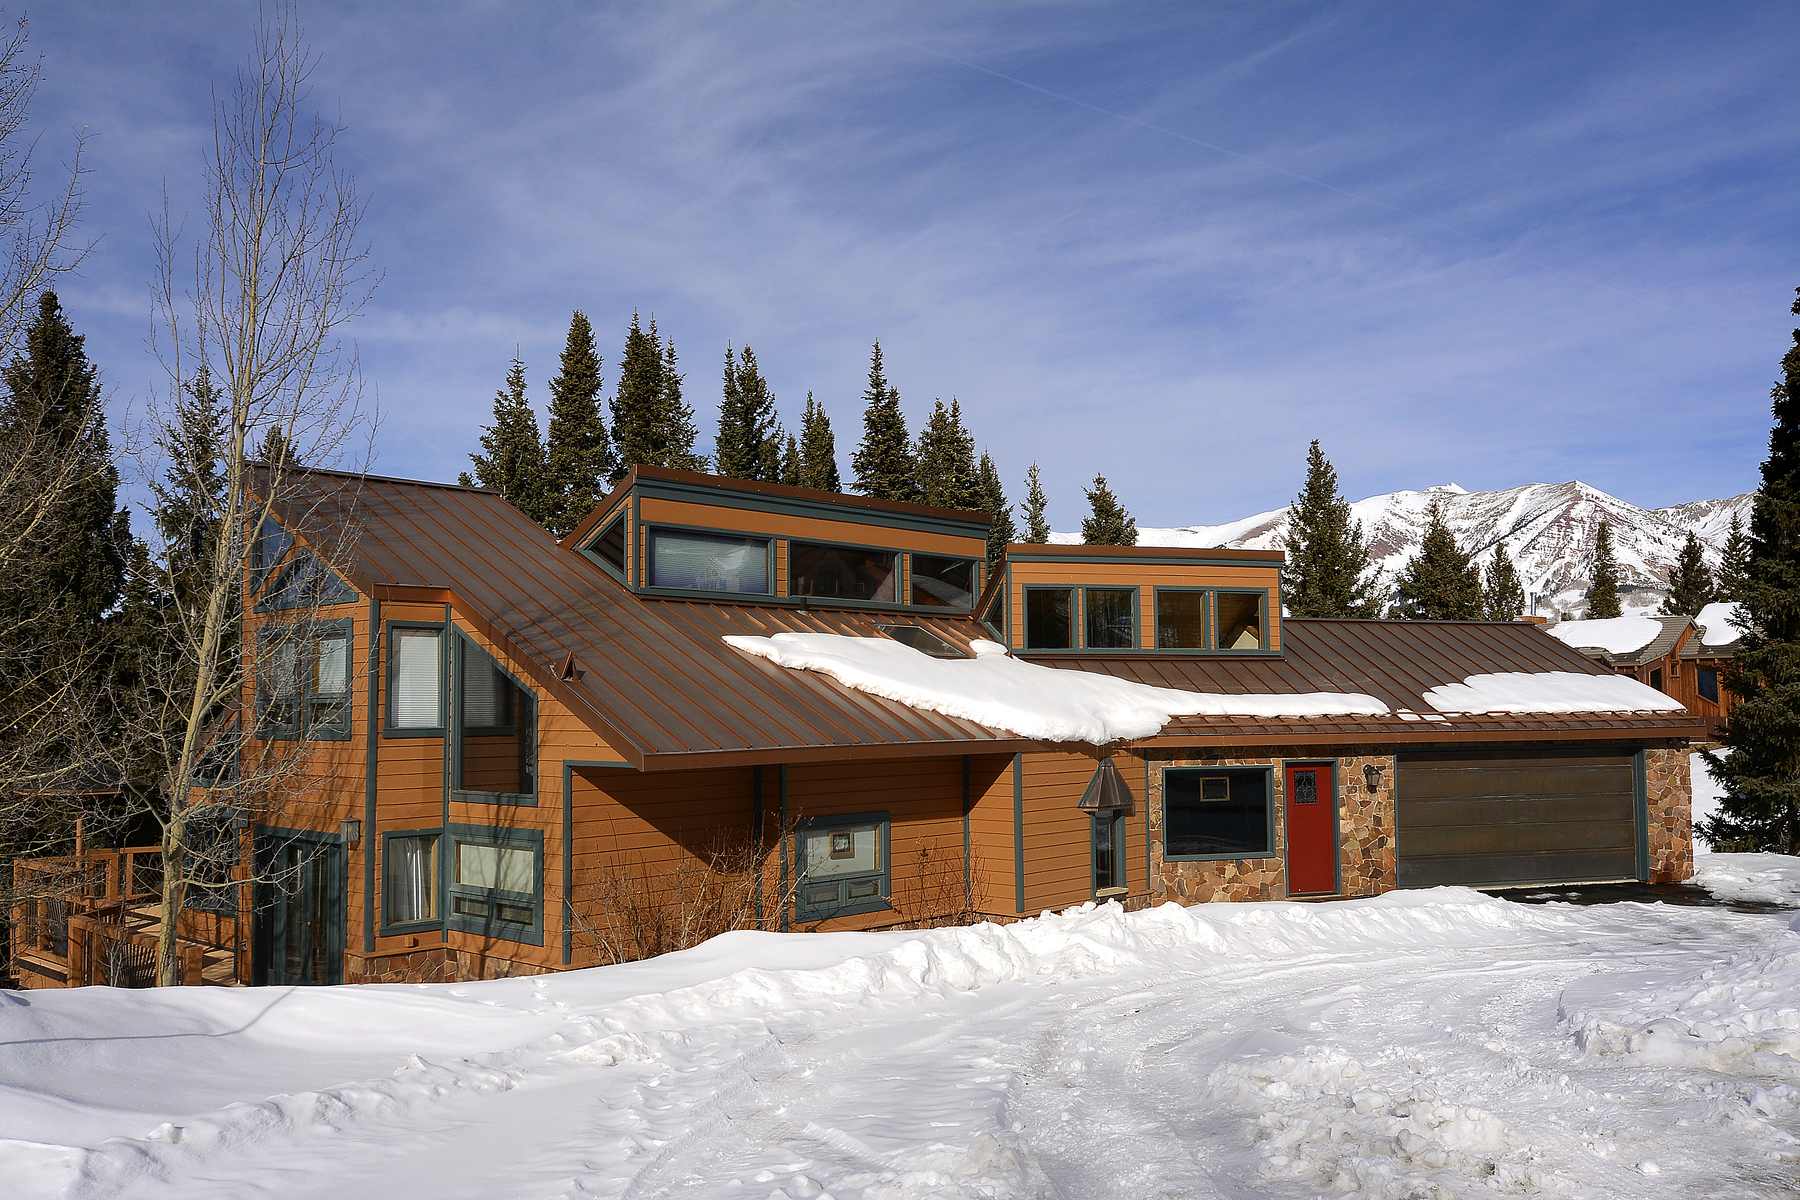 Casa Unifamiliar por un Venta en Desirable Mountain Home 10 Aspen Lane Mount Crested Butte, Colorado, 81225 Estados Unidos